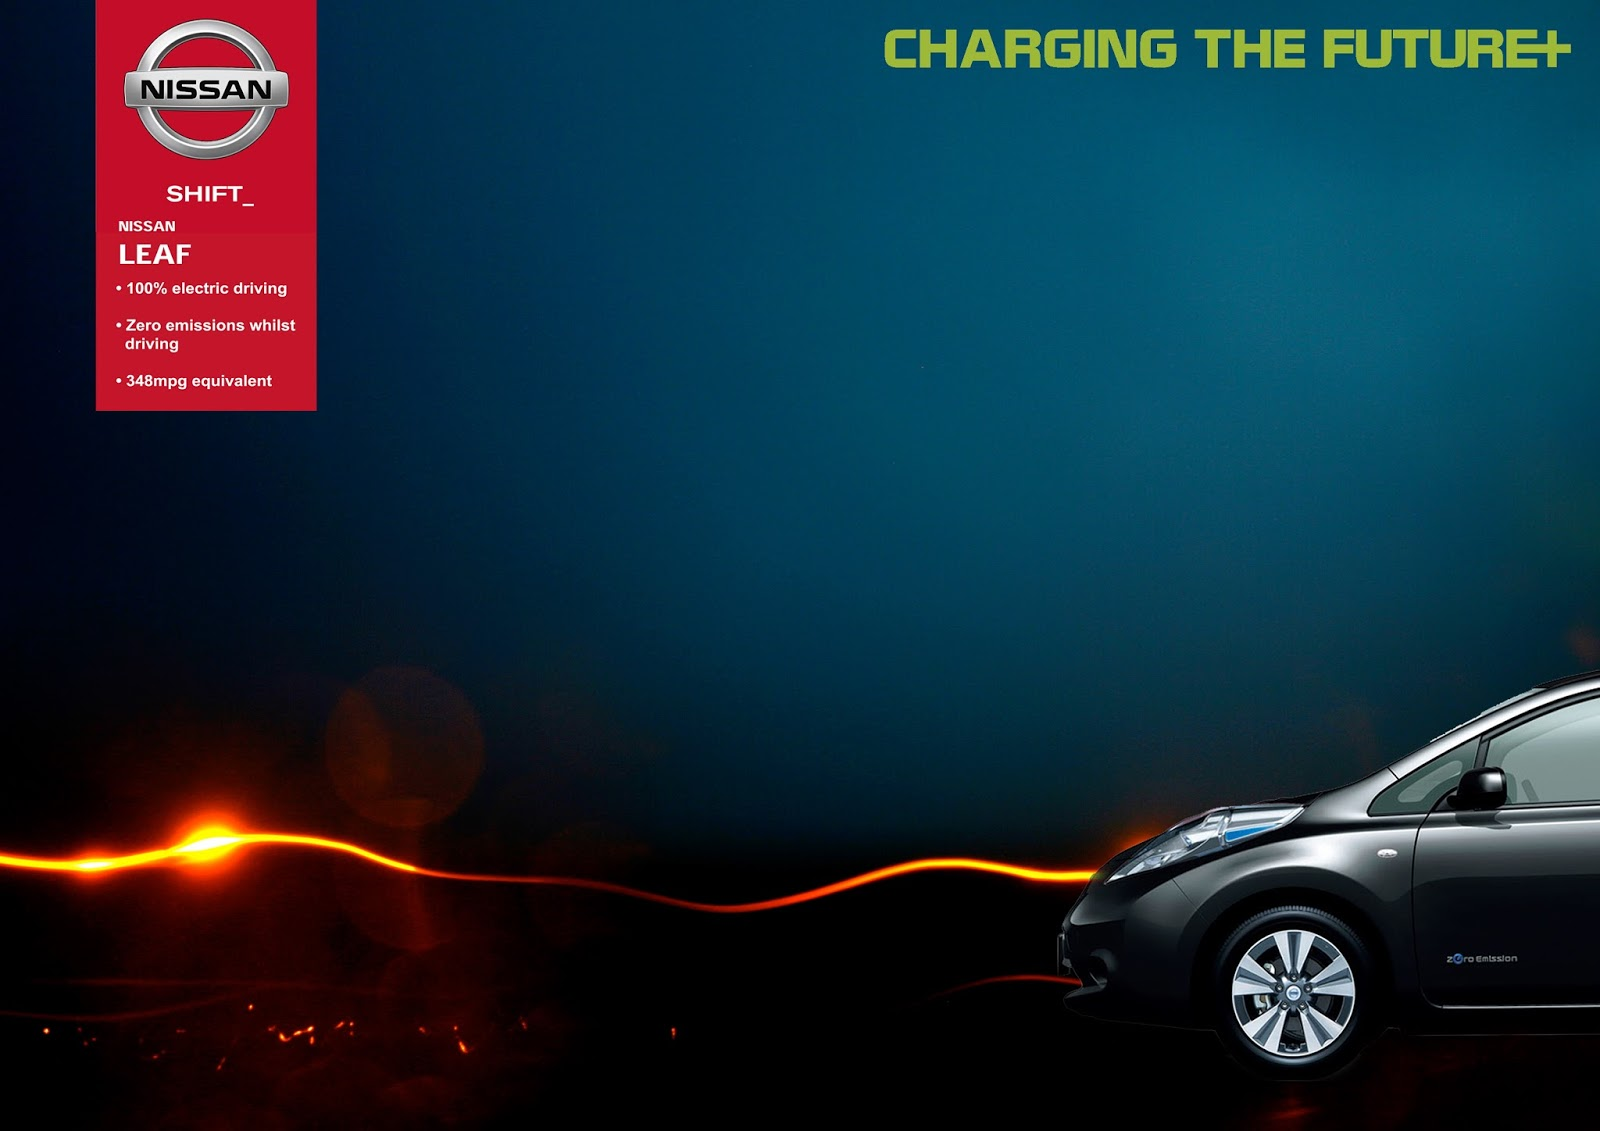 Nissan Leaf Electric Car Advertisement Ycn Project